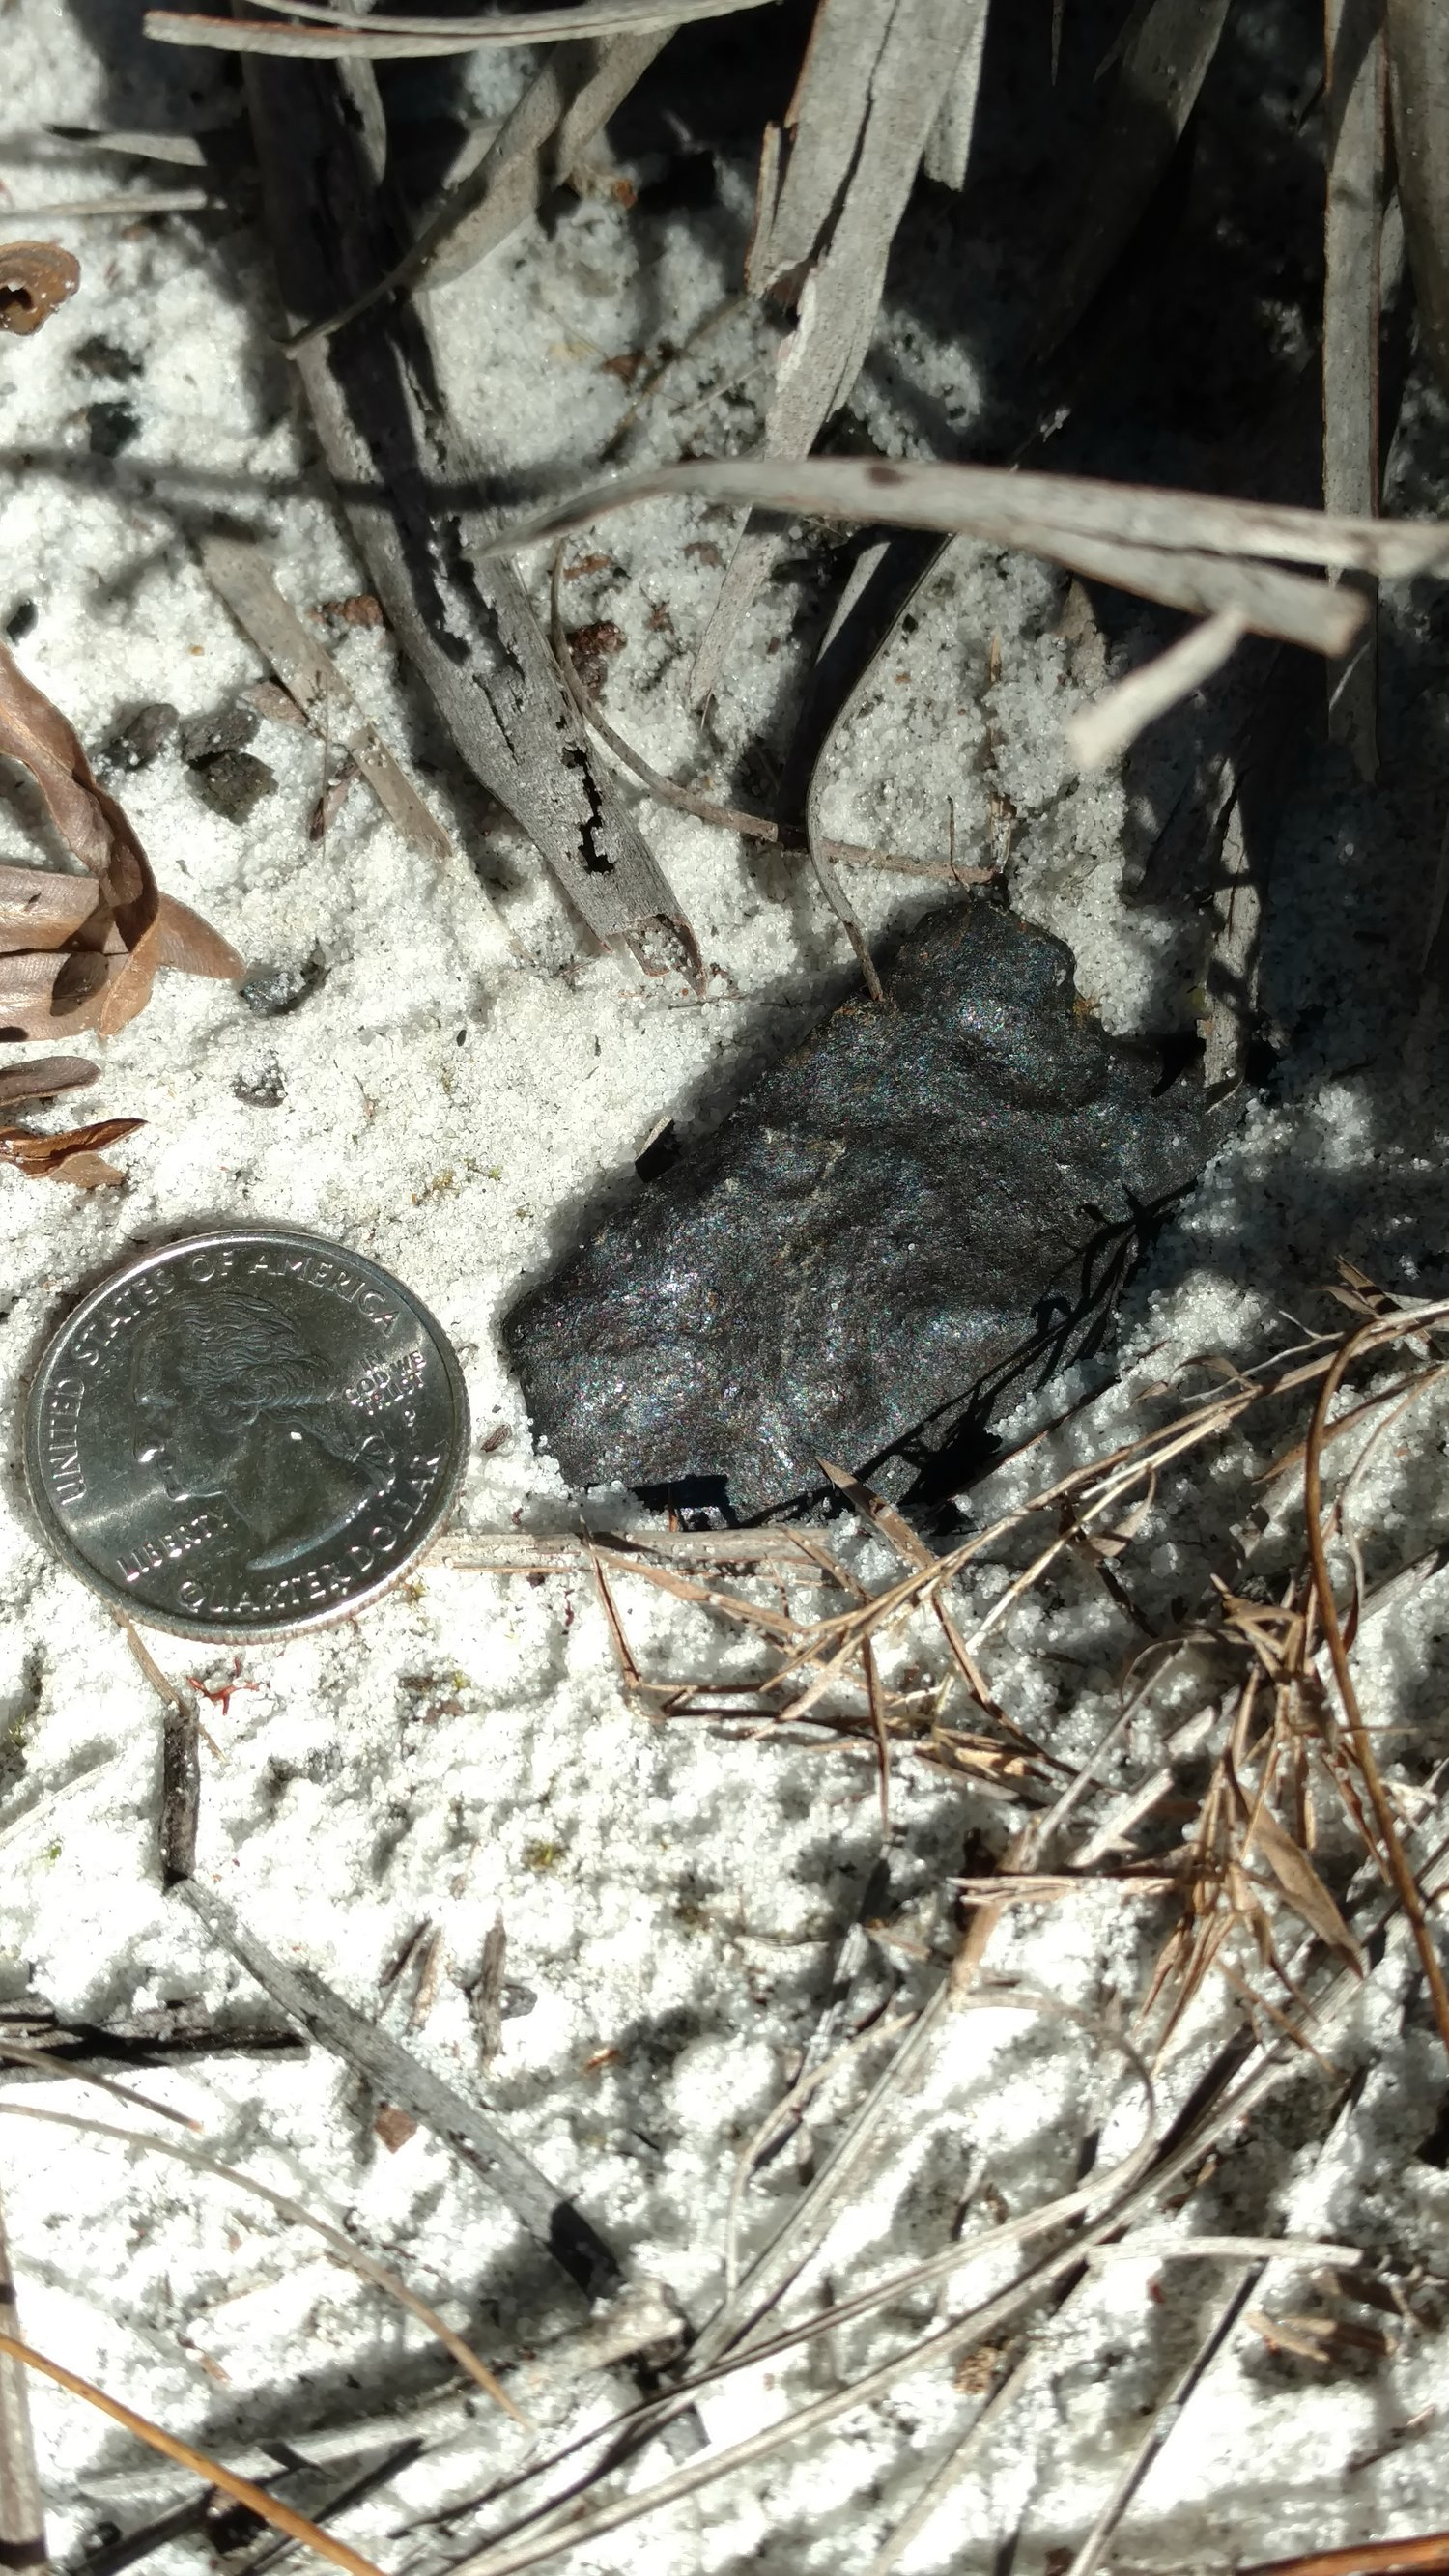 Osceola FL. 75.5g, 100% crusted found by Larry Adkins